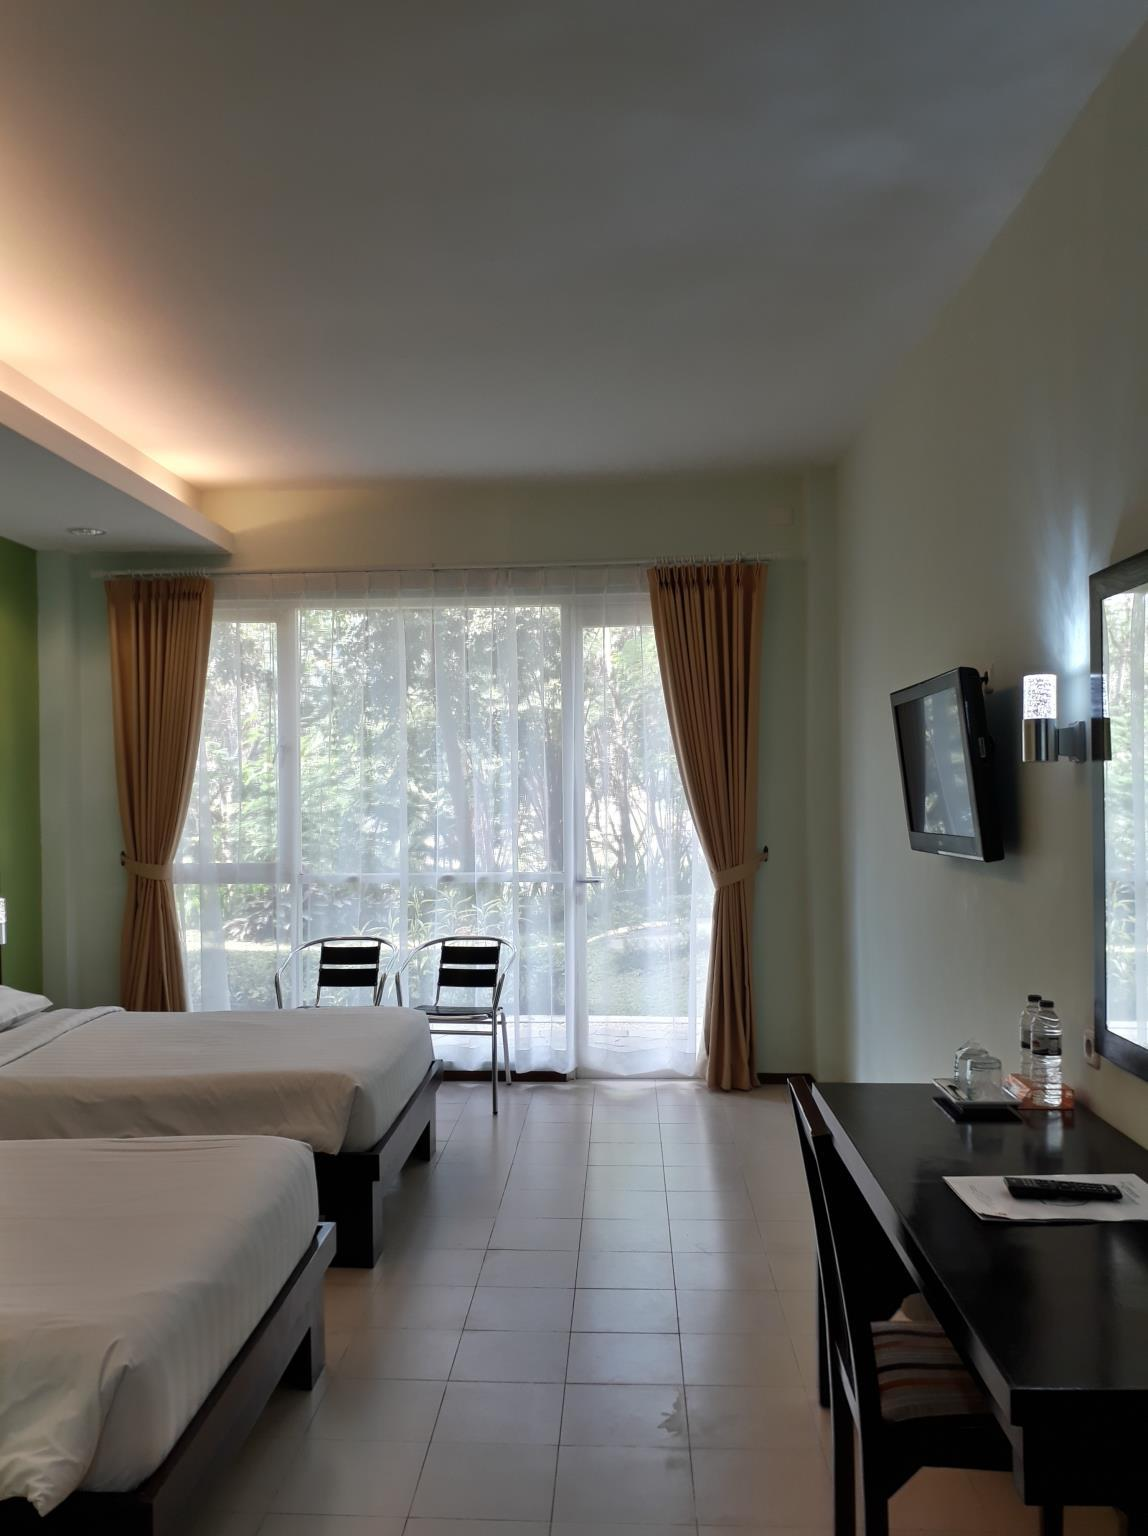 Twin Bed Hotel Room: Room Deals, Photos & Reviews